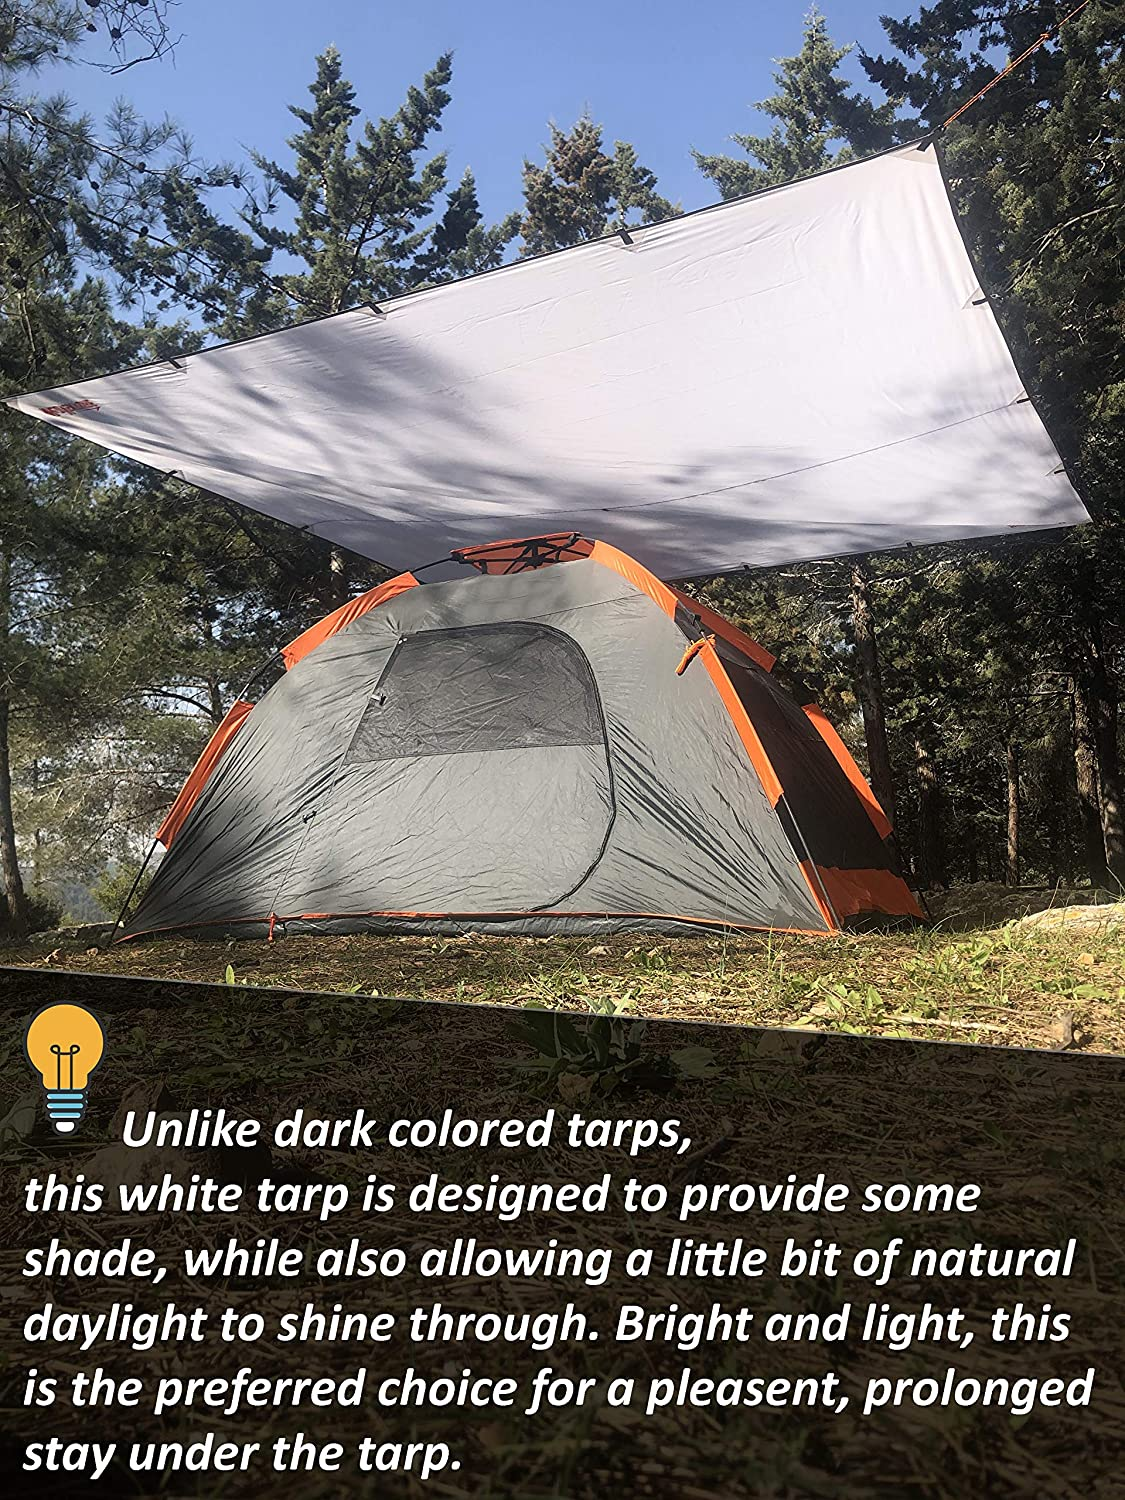 Waterproof Lightweight Survival Gear Shelter for Camping and Outdoor Living 9.8 x 9.3 Tarp Tent Backpacking WildVenture Tent Tarp Rain Fly